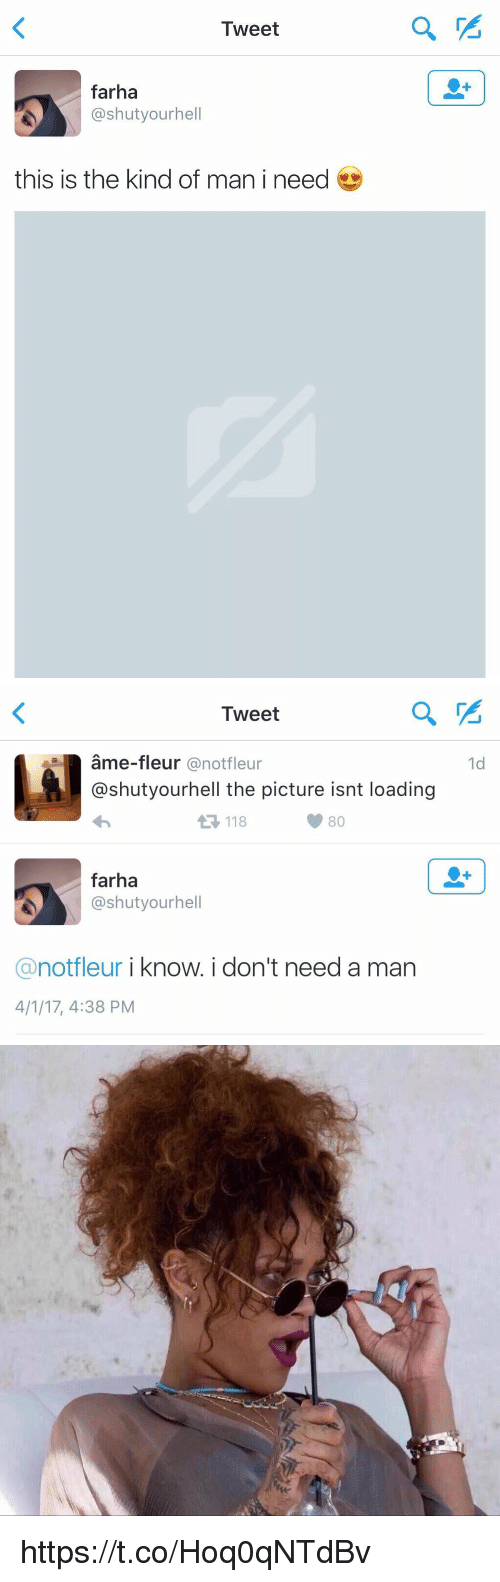 Relatable, Man, and Tweet: Tweet  farha  @shutyourhell  this is the kind of man i need   Tweet  ame-fleur @notfleur  @shutyourhell the picture isnt loading  1d  118  farha  @shutyourhell  @notfleur i know.i don't need a man  4/1/17, 4:38 PM https://t.co/Hoq0qNTdBv